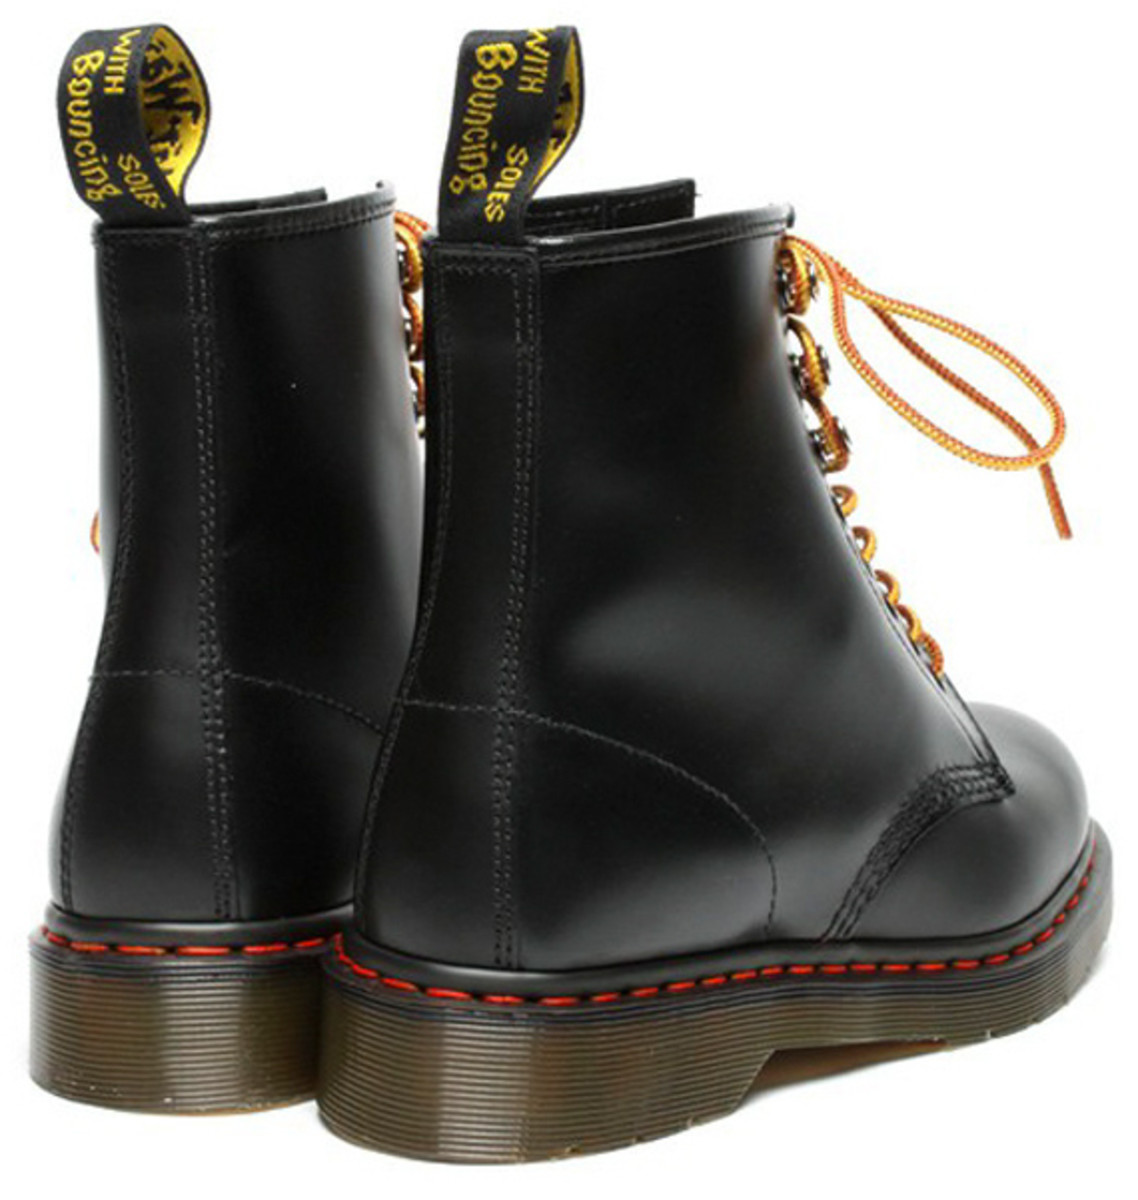 atmos-dr-martens-8-eyelets-boots-04